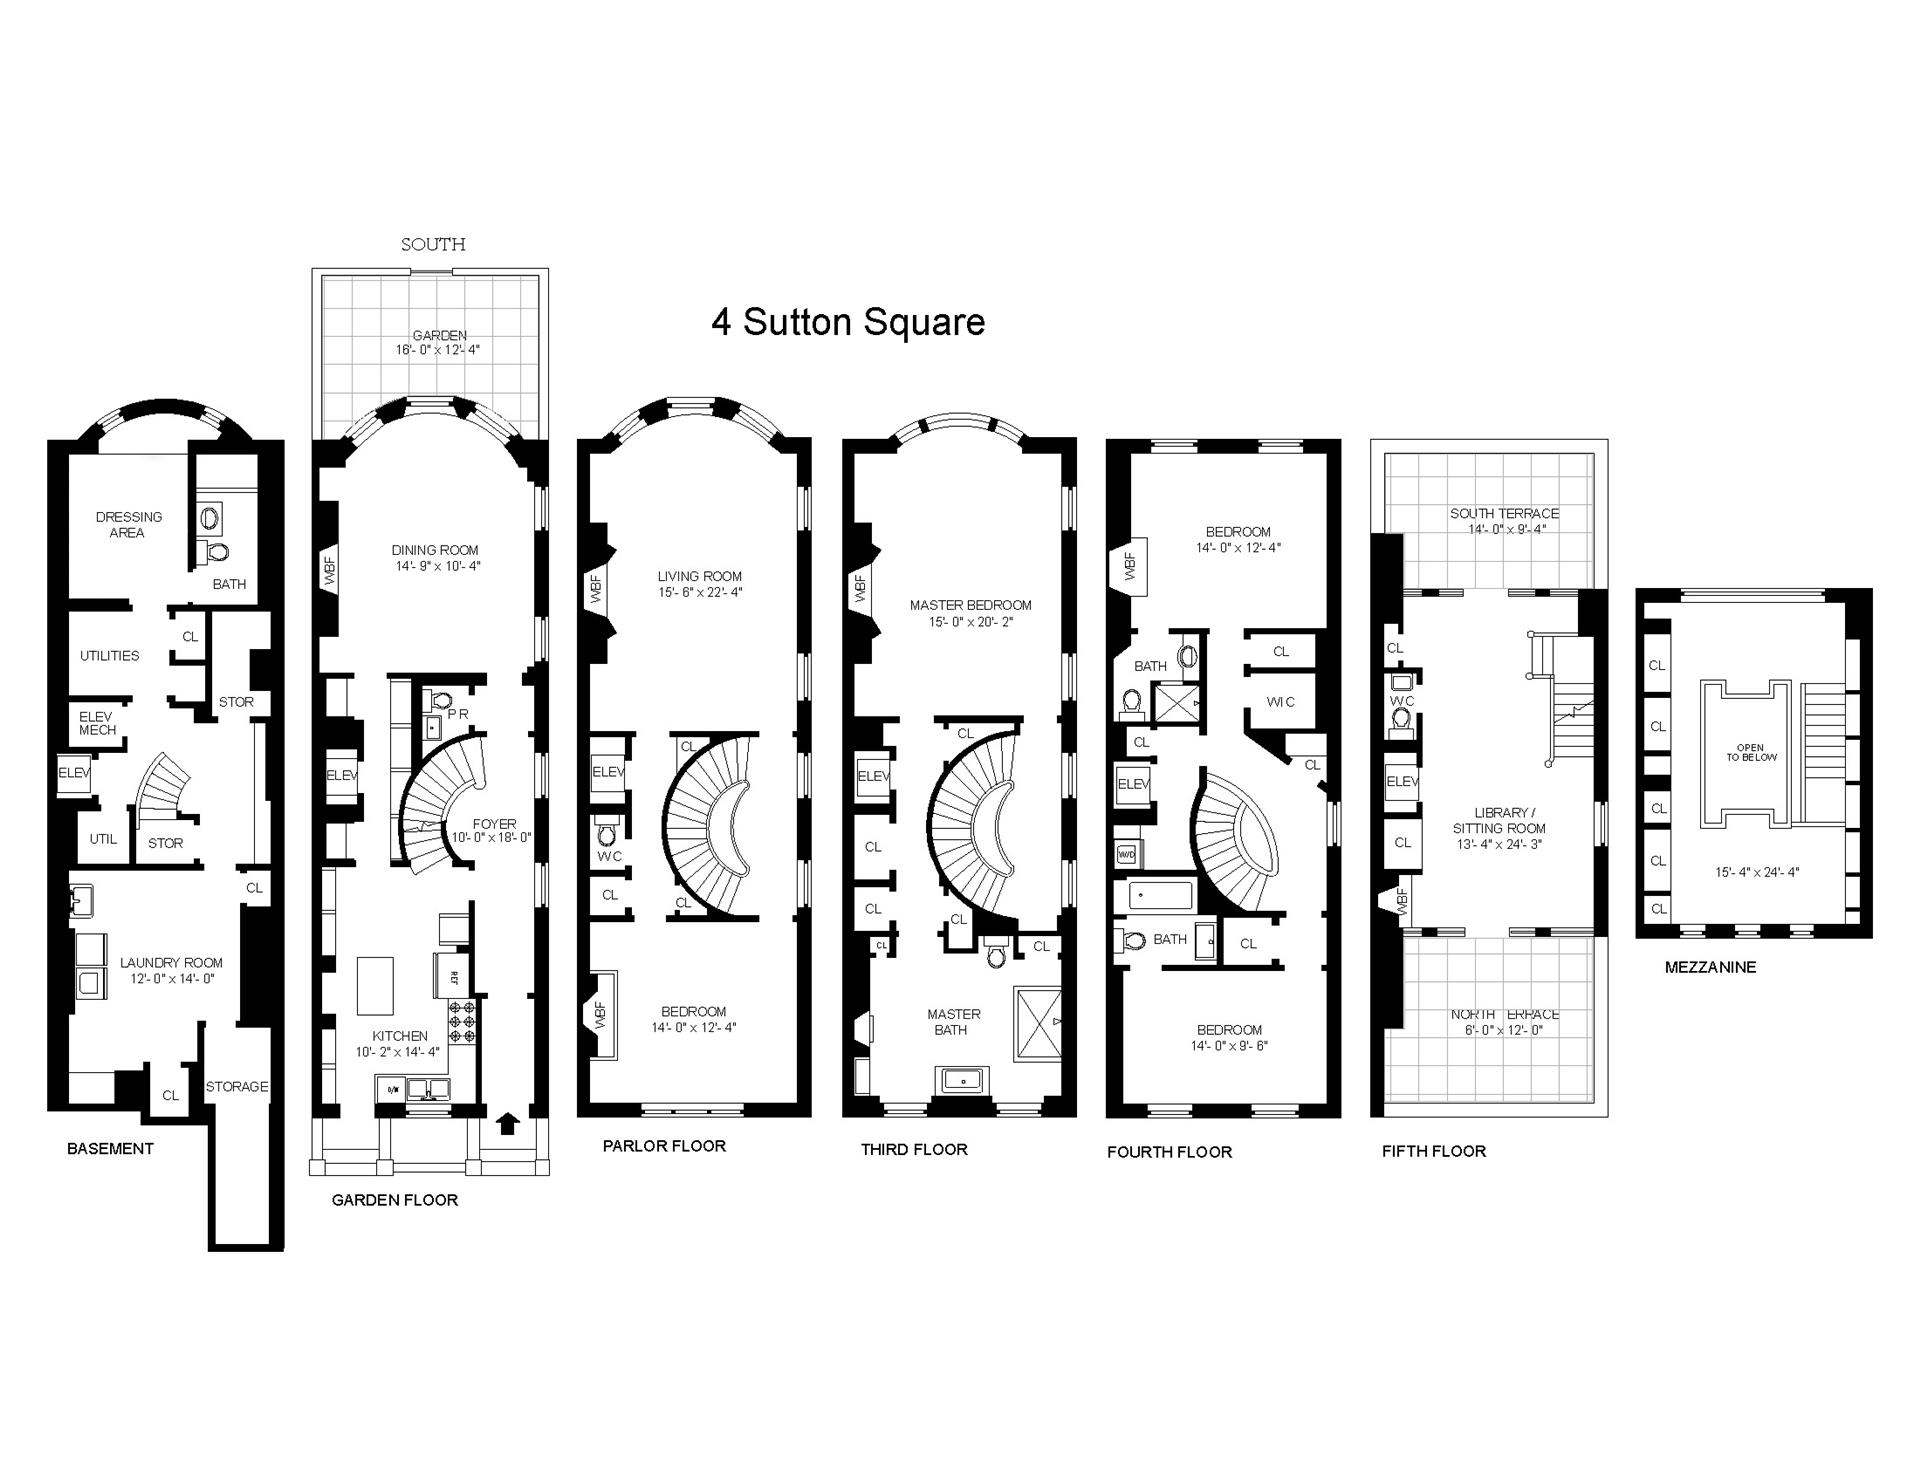 Floor plan of 4 Sutton Square - Sutton Area, New York